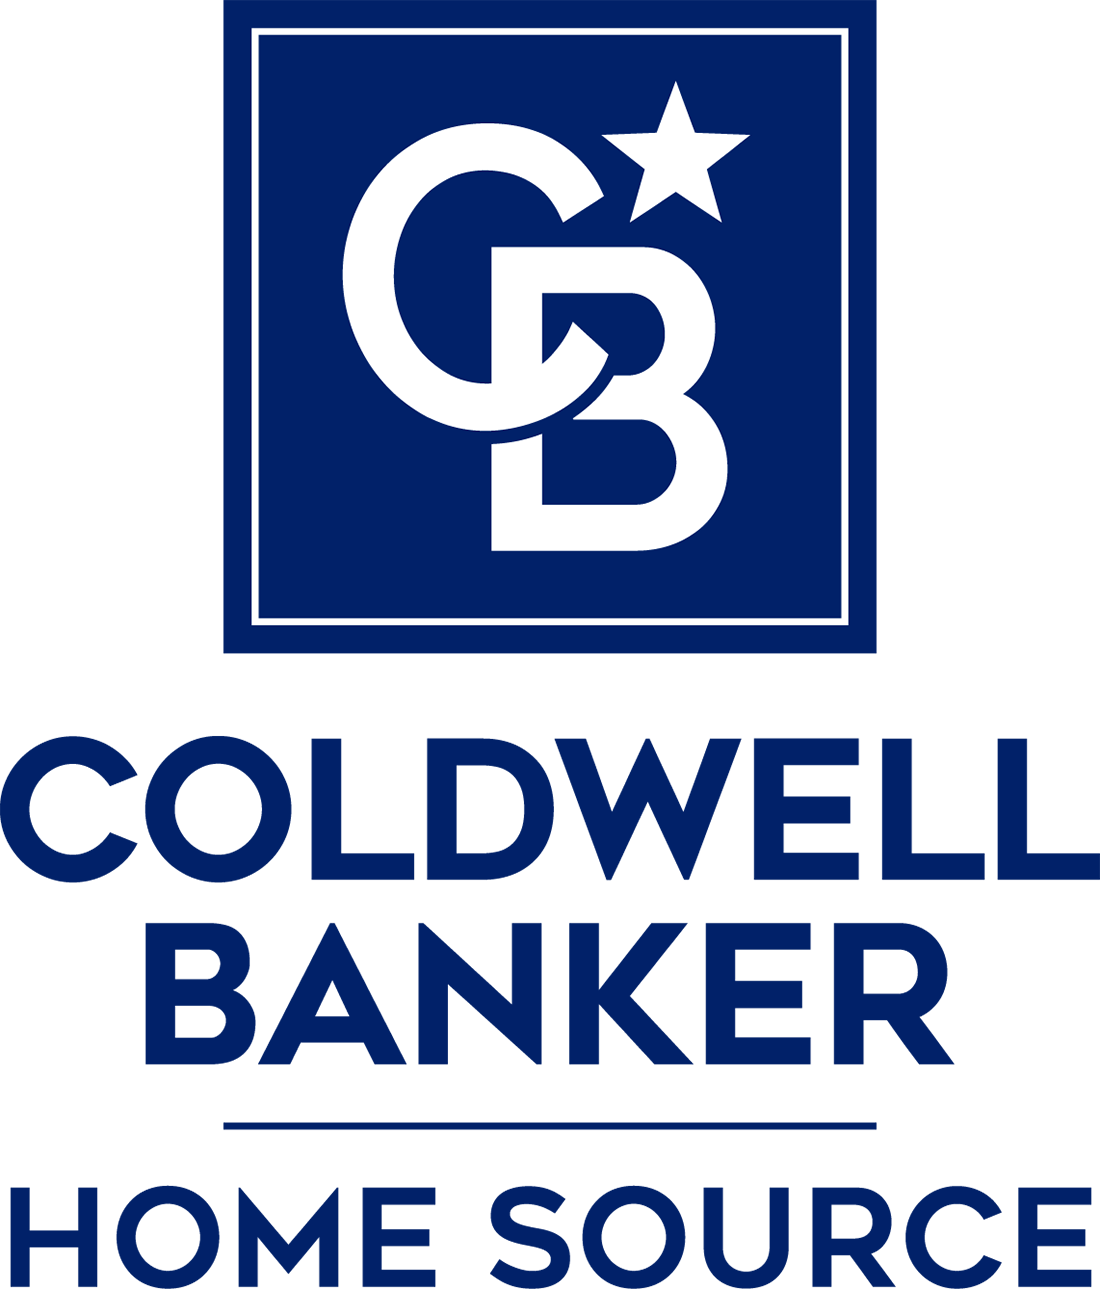 Al Calvert - Coldwell Banker Home Source Logo